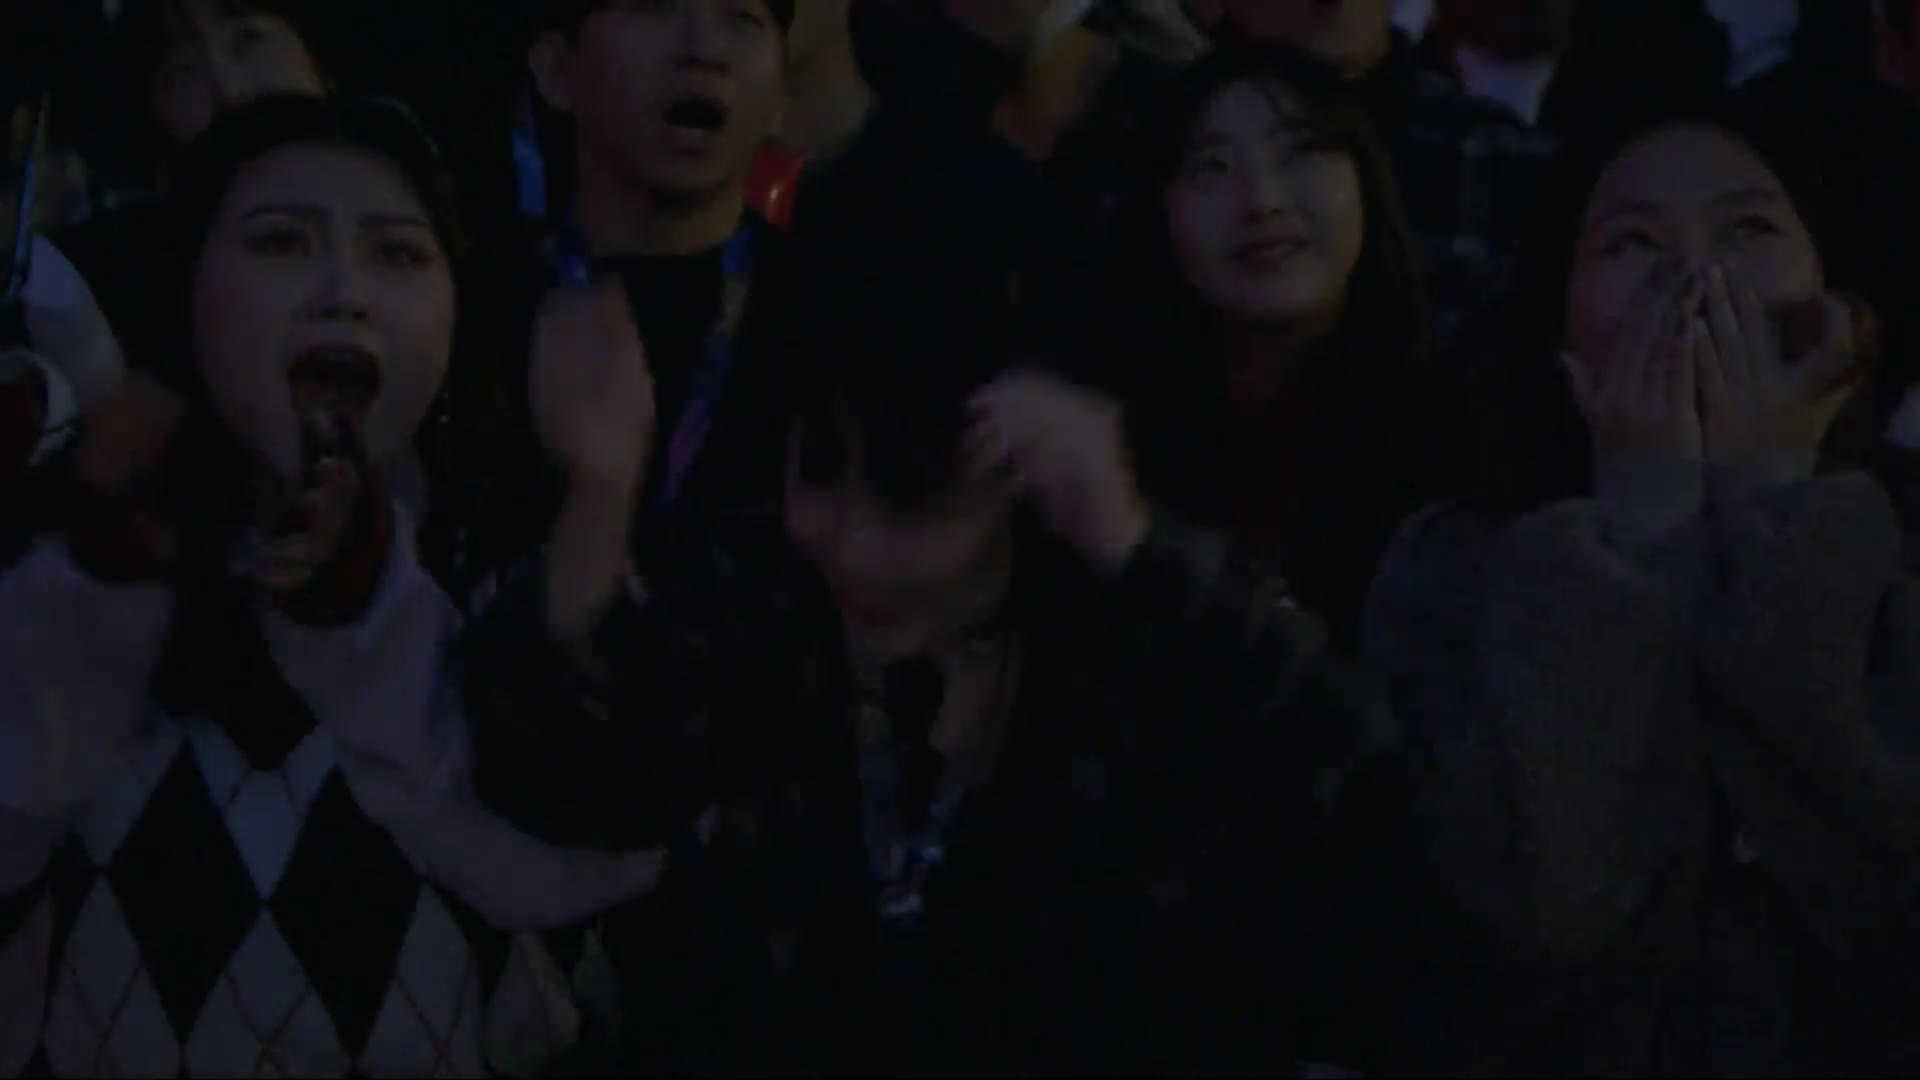 Riot Games, funny, girl, hype, lol, worlds, Worlds 2018 - Front Row Hype Girl GIFs